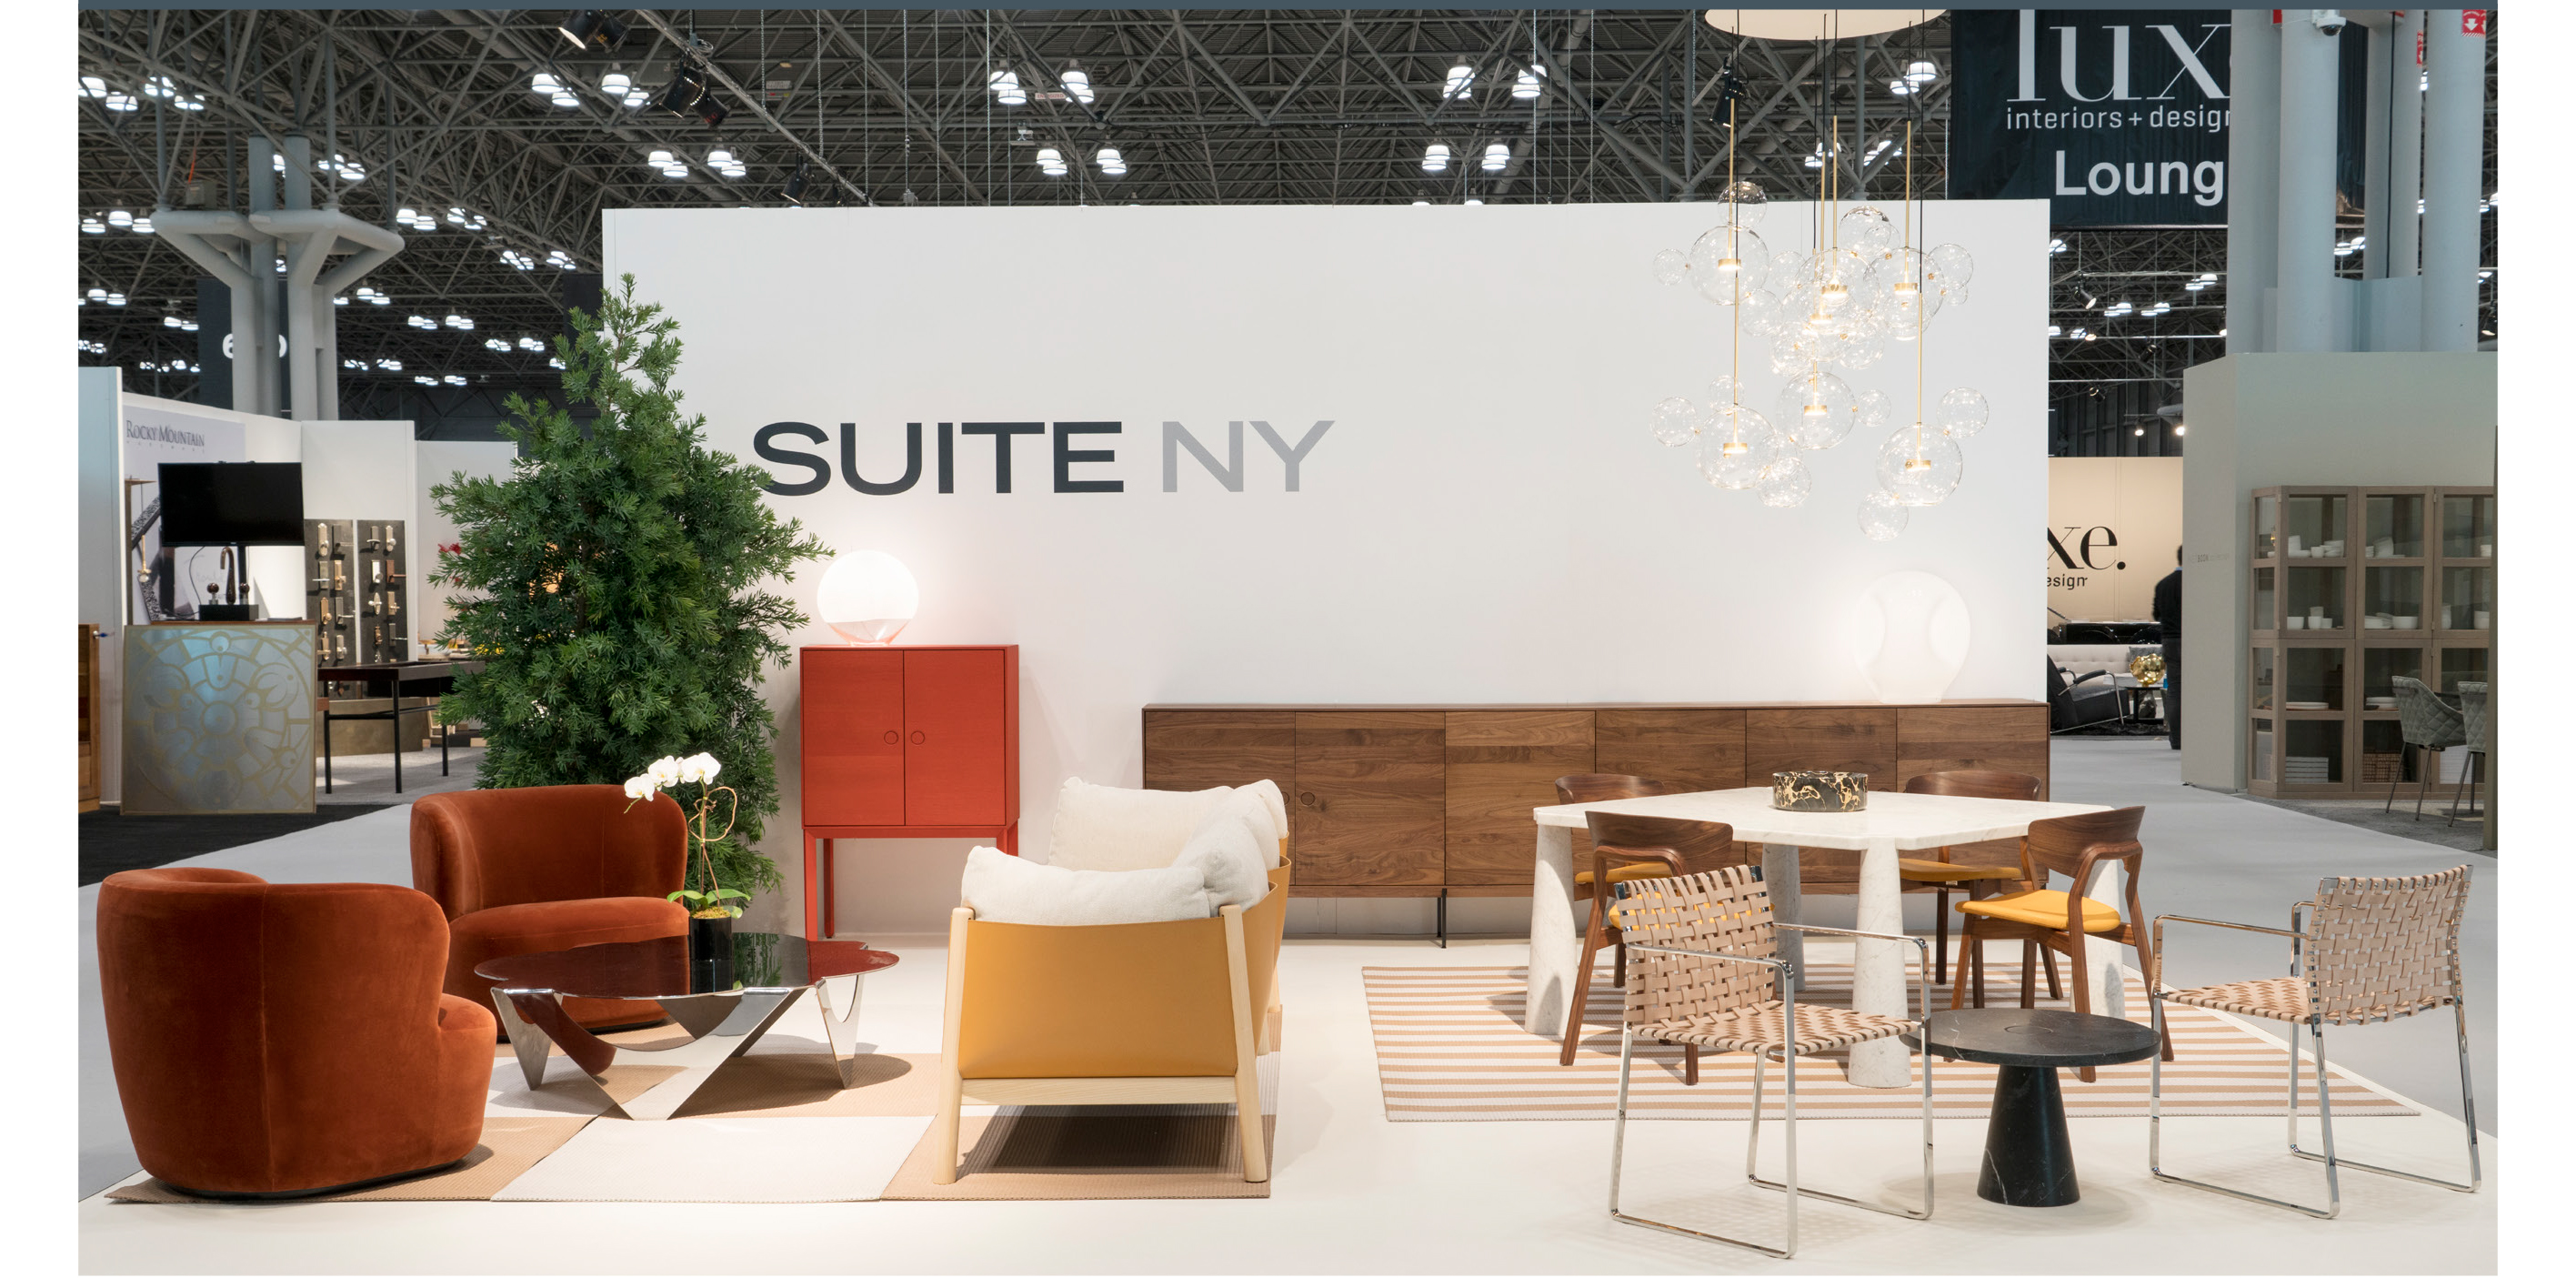 Icff 2016 suite ny new york gubi luteca zeitraum when objects work vistosi mark albrech studio agape casa giopato and coombes de padova woonotes opening